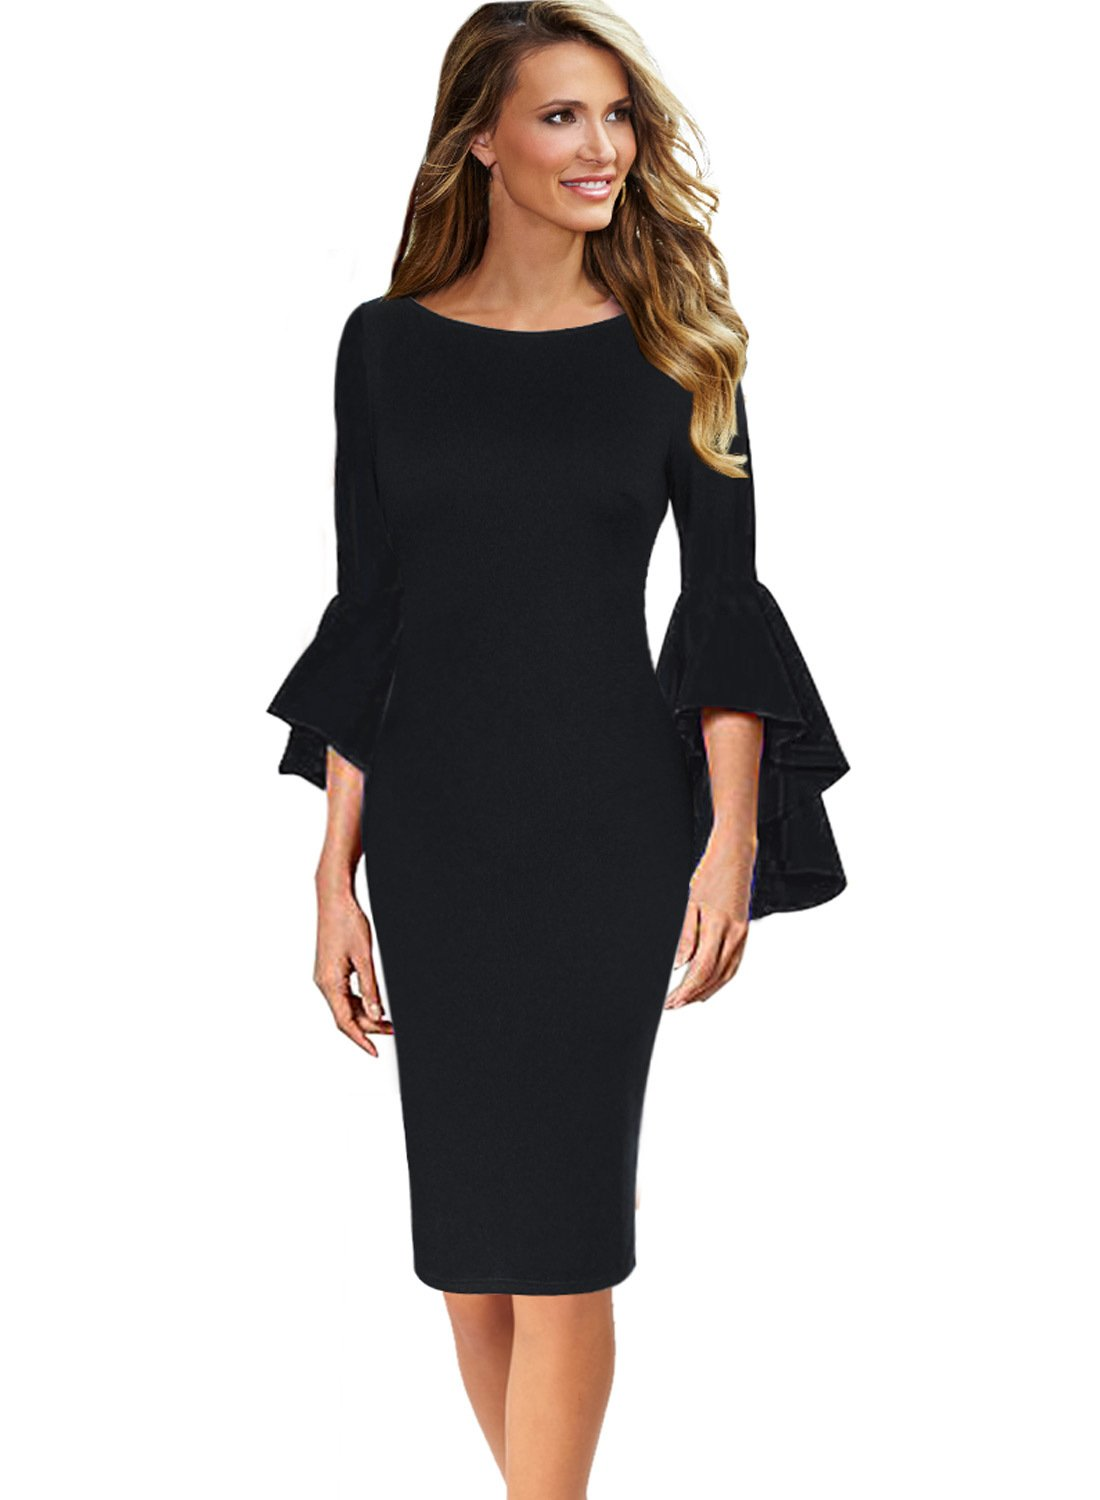 VFSHOW Womens Ruffle Bell Sleeves Business Cocktail Party Sheath Dress 1222 BLK L by VFSHOW